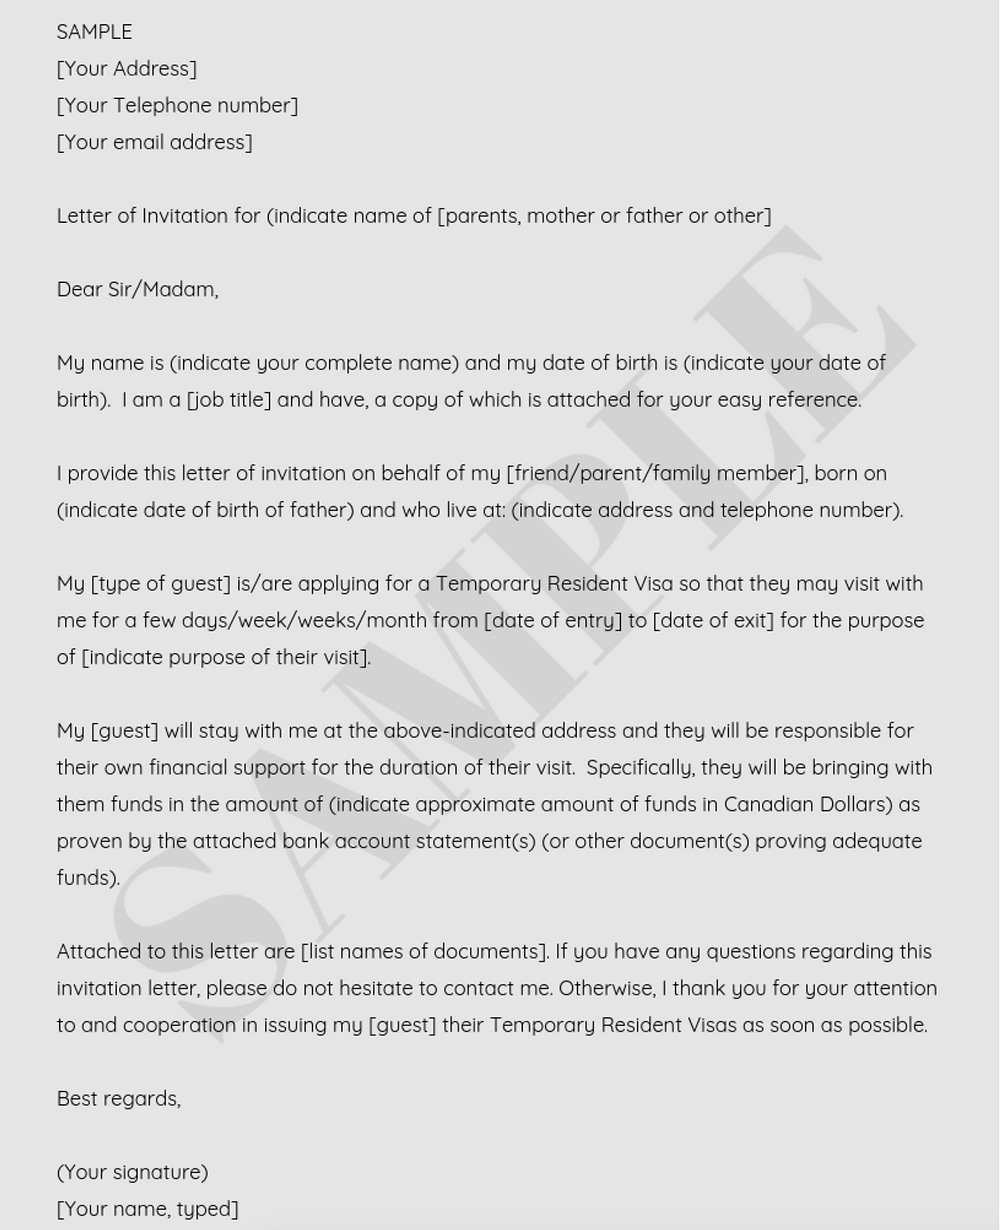 Letter Of Invitation Example from static.wixstatic.com